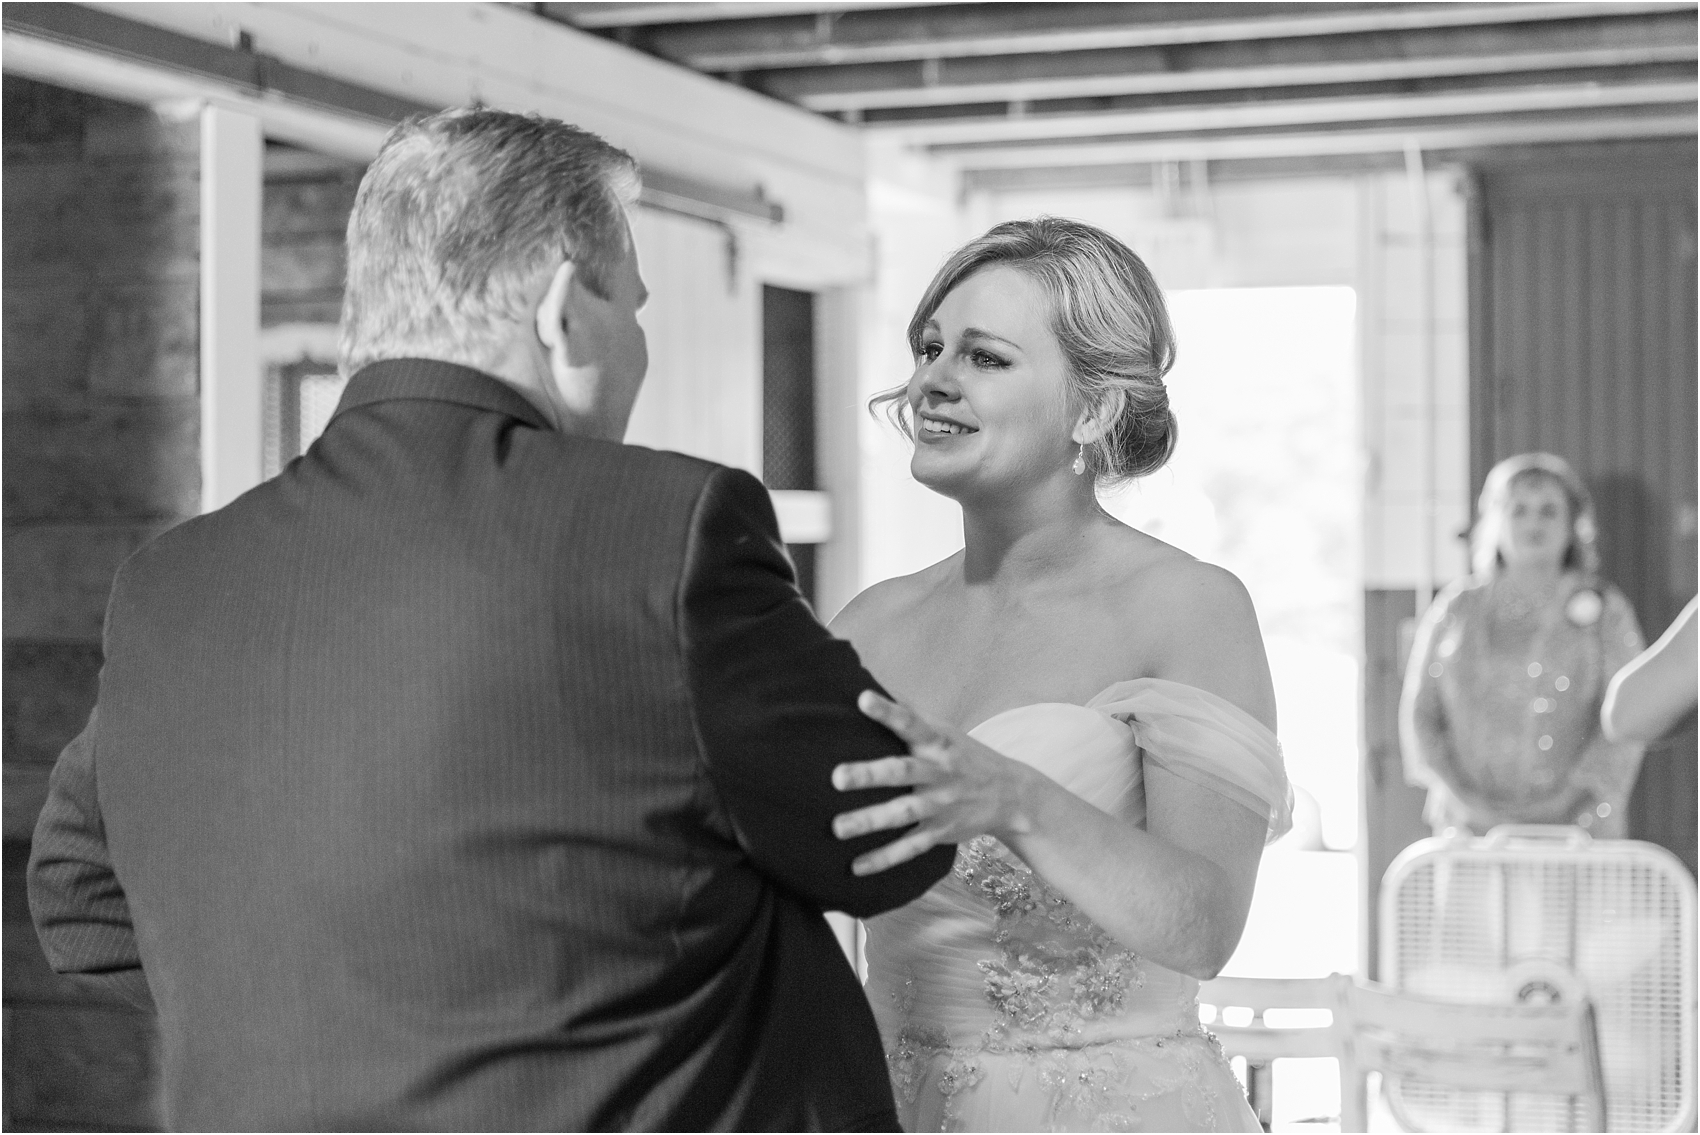 father-and-bride-share-emotional-first-look-on-wedding-day-photos-in-detroit-michigan-by-courtney-carolyn-photography_0042.jpg